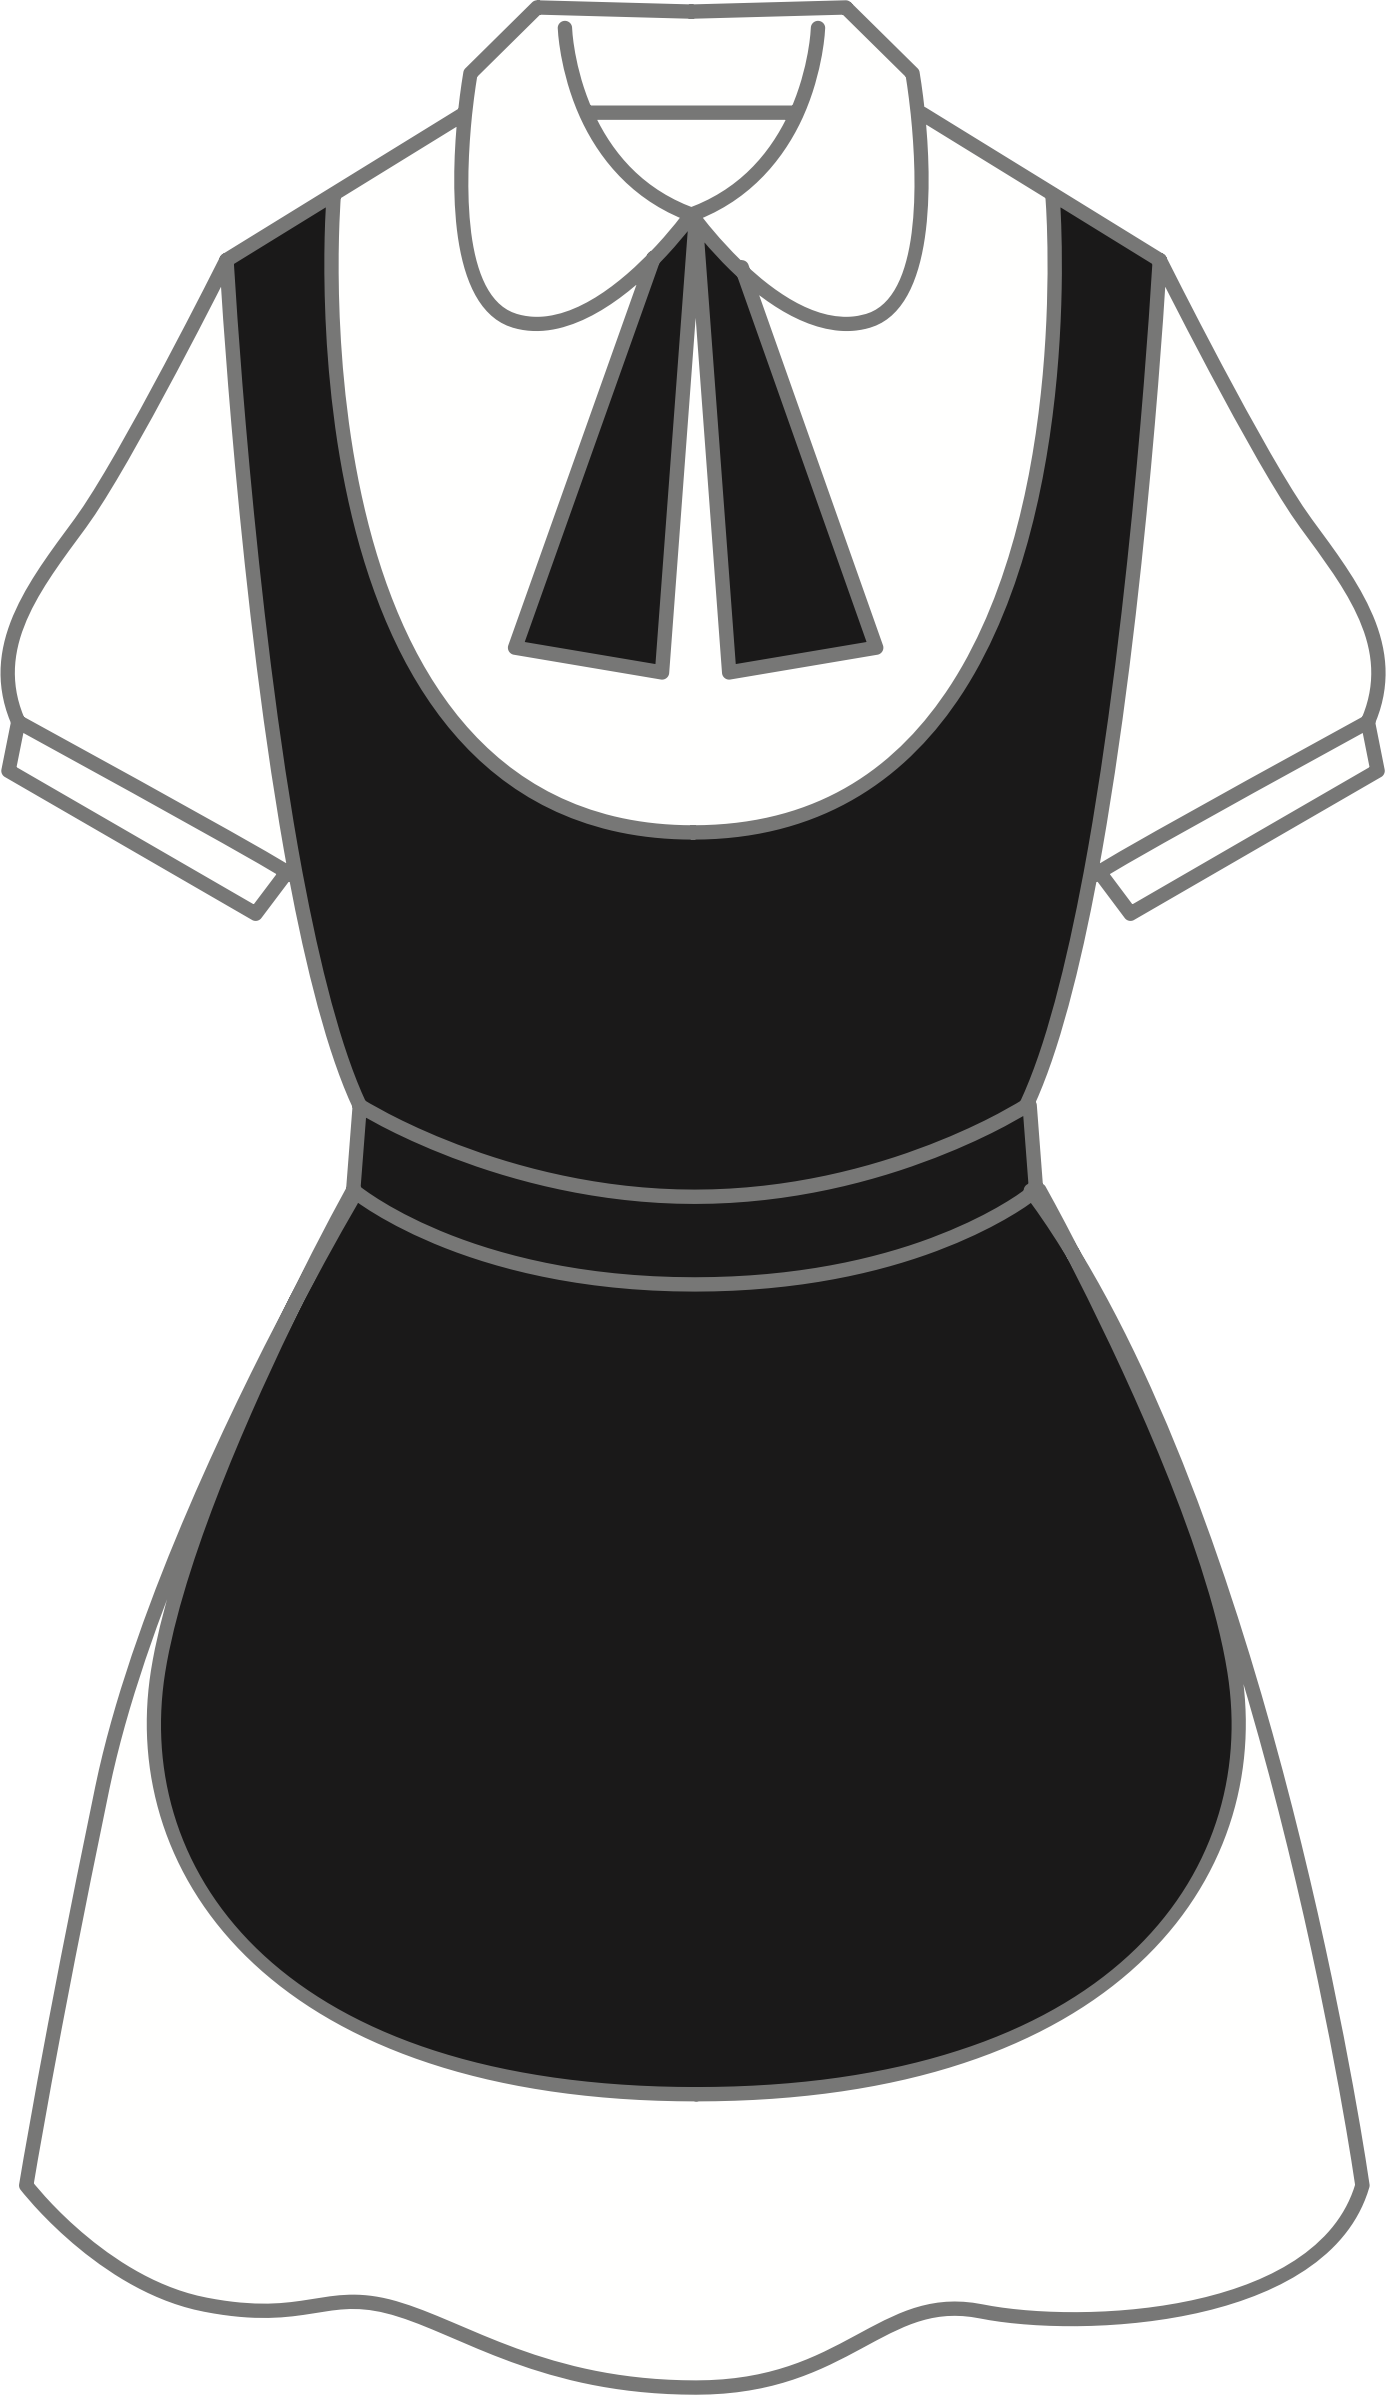 Maid clipart black and white. Uniform big image png